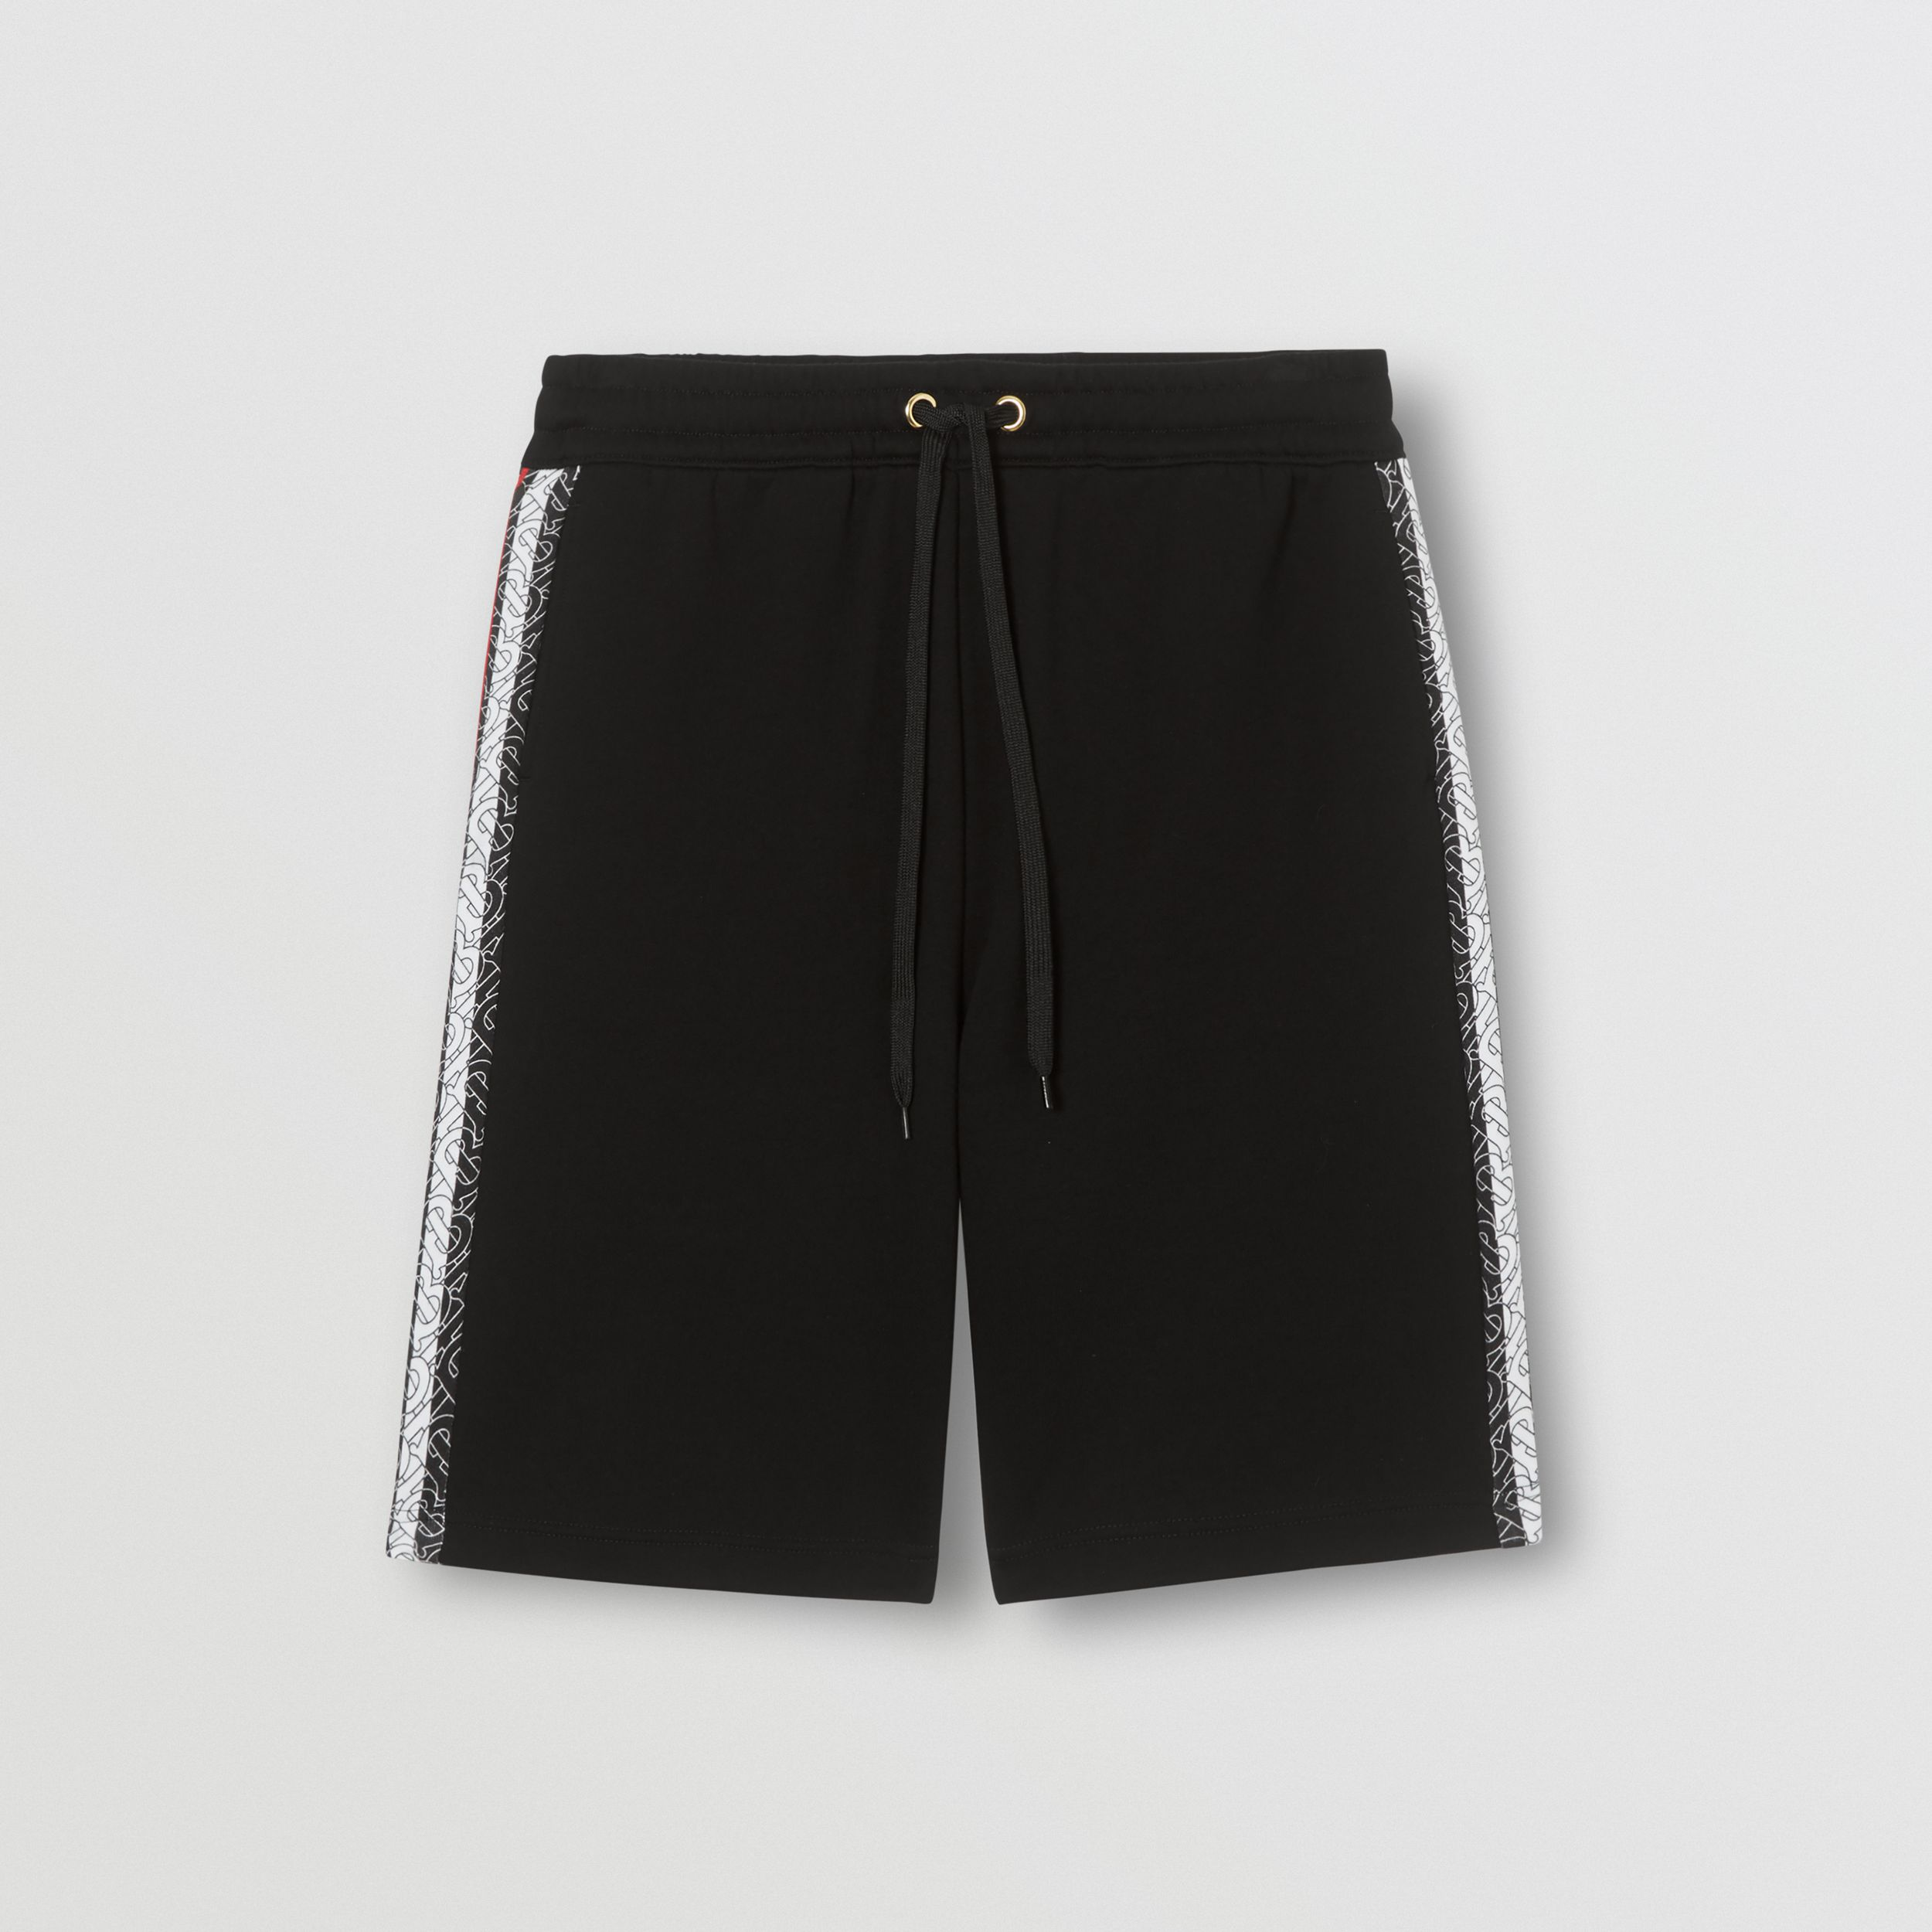 Monogram Stripe Print Cotton Shorts in Black - Men | Burberry - 4